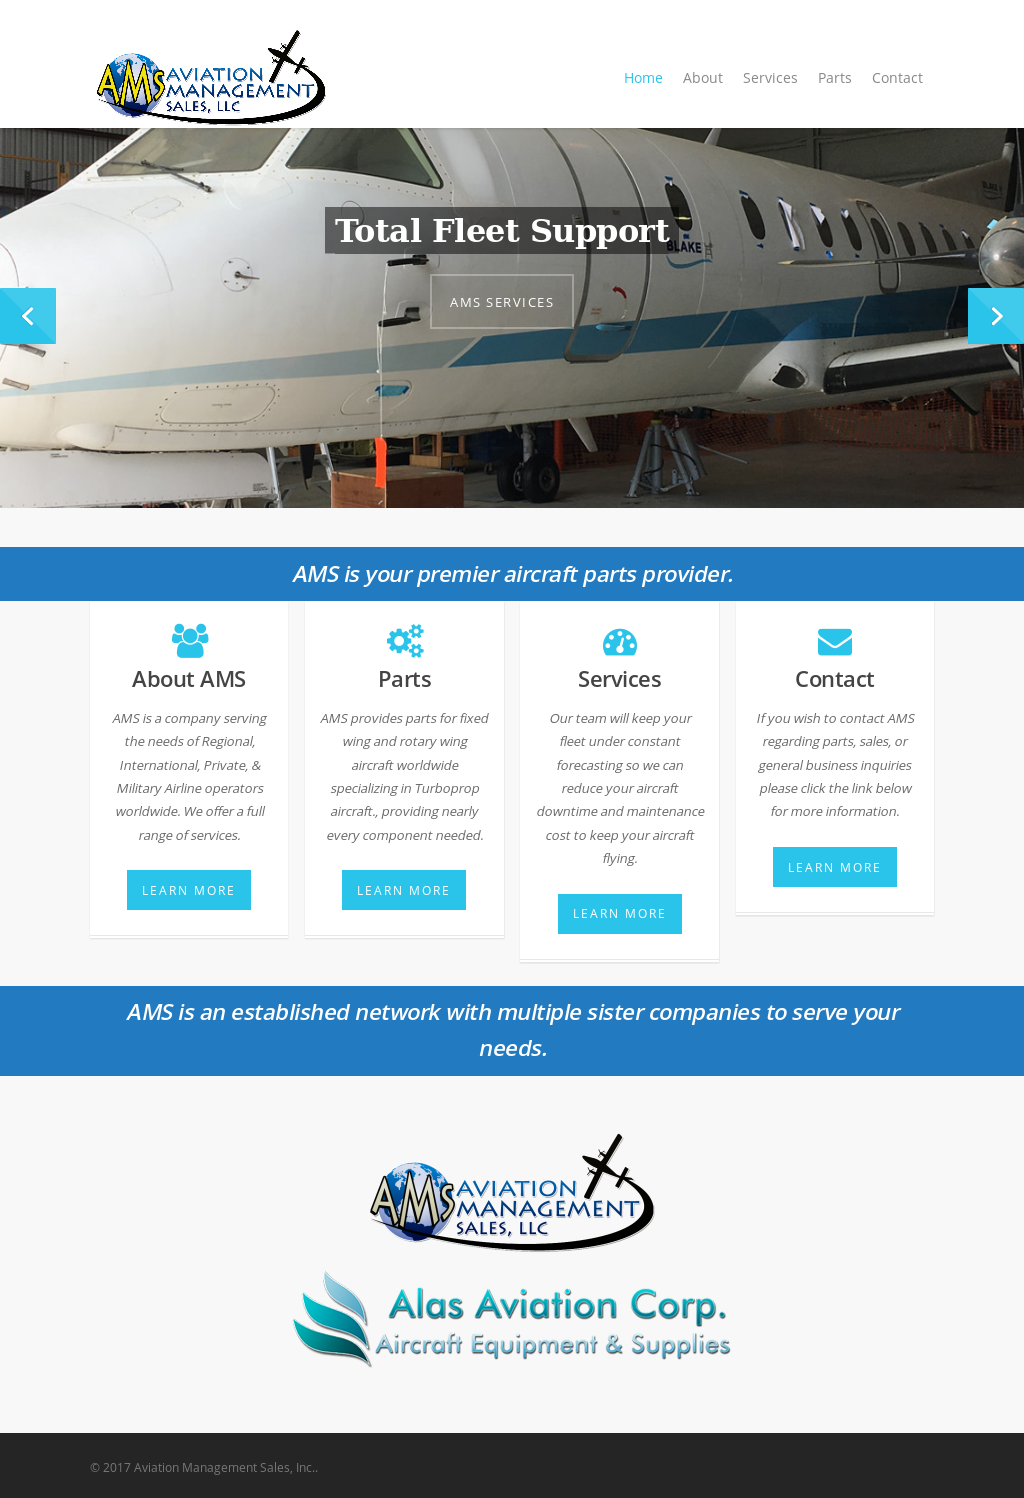 Aviation Management Sales Competitors, Revenue and Employees